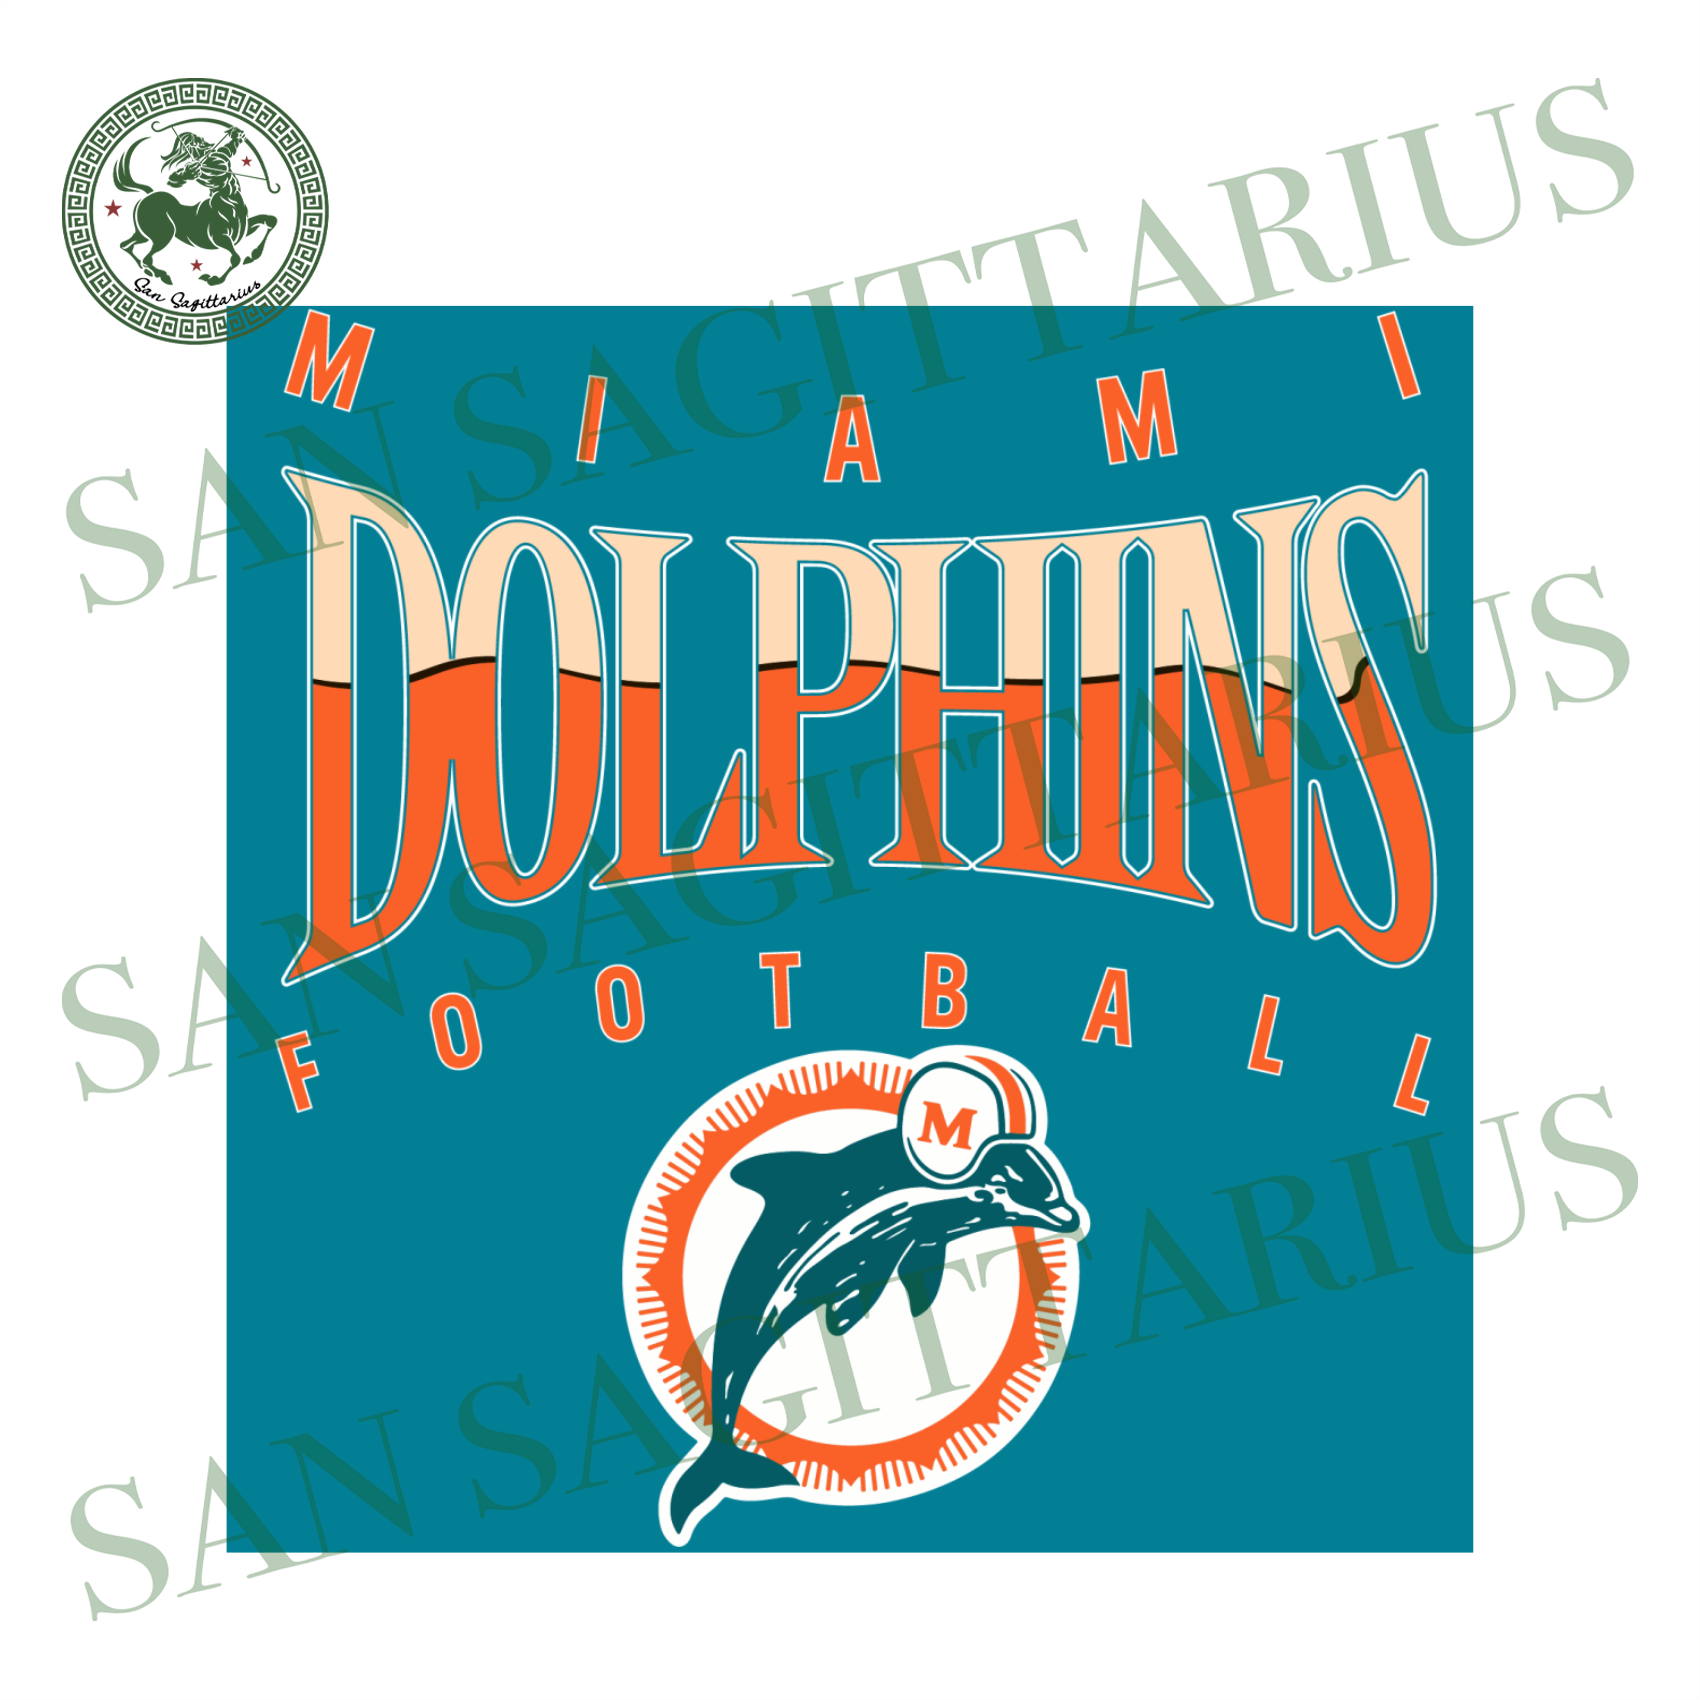 Miami Dolphins Football Svg, Sport Svg, Dolphins Football Logo Vector, Dolphins Nfl Design, Football Mom Gift, Dolphins Vector, Nfl Team Logo, Dolphins Fan Gift Ideas, Dolphins Fan Shirt, Spo